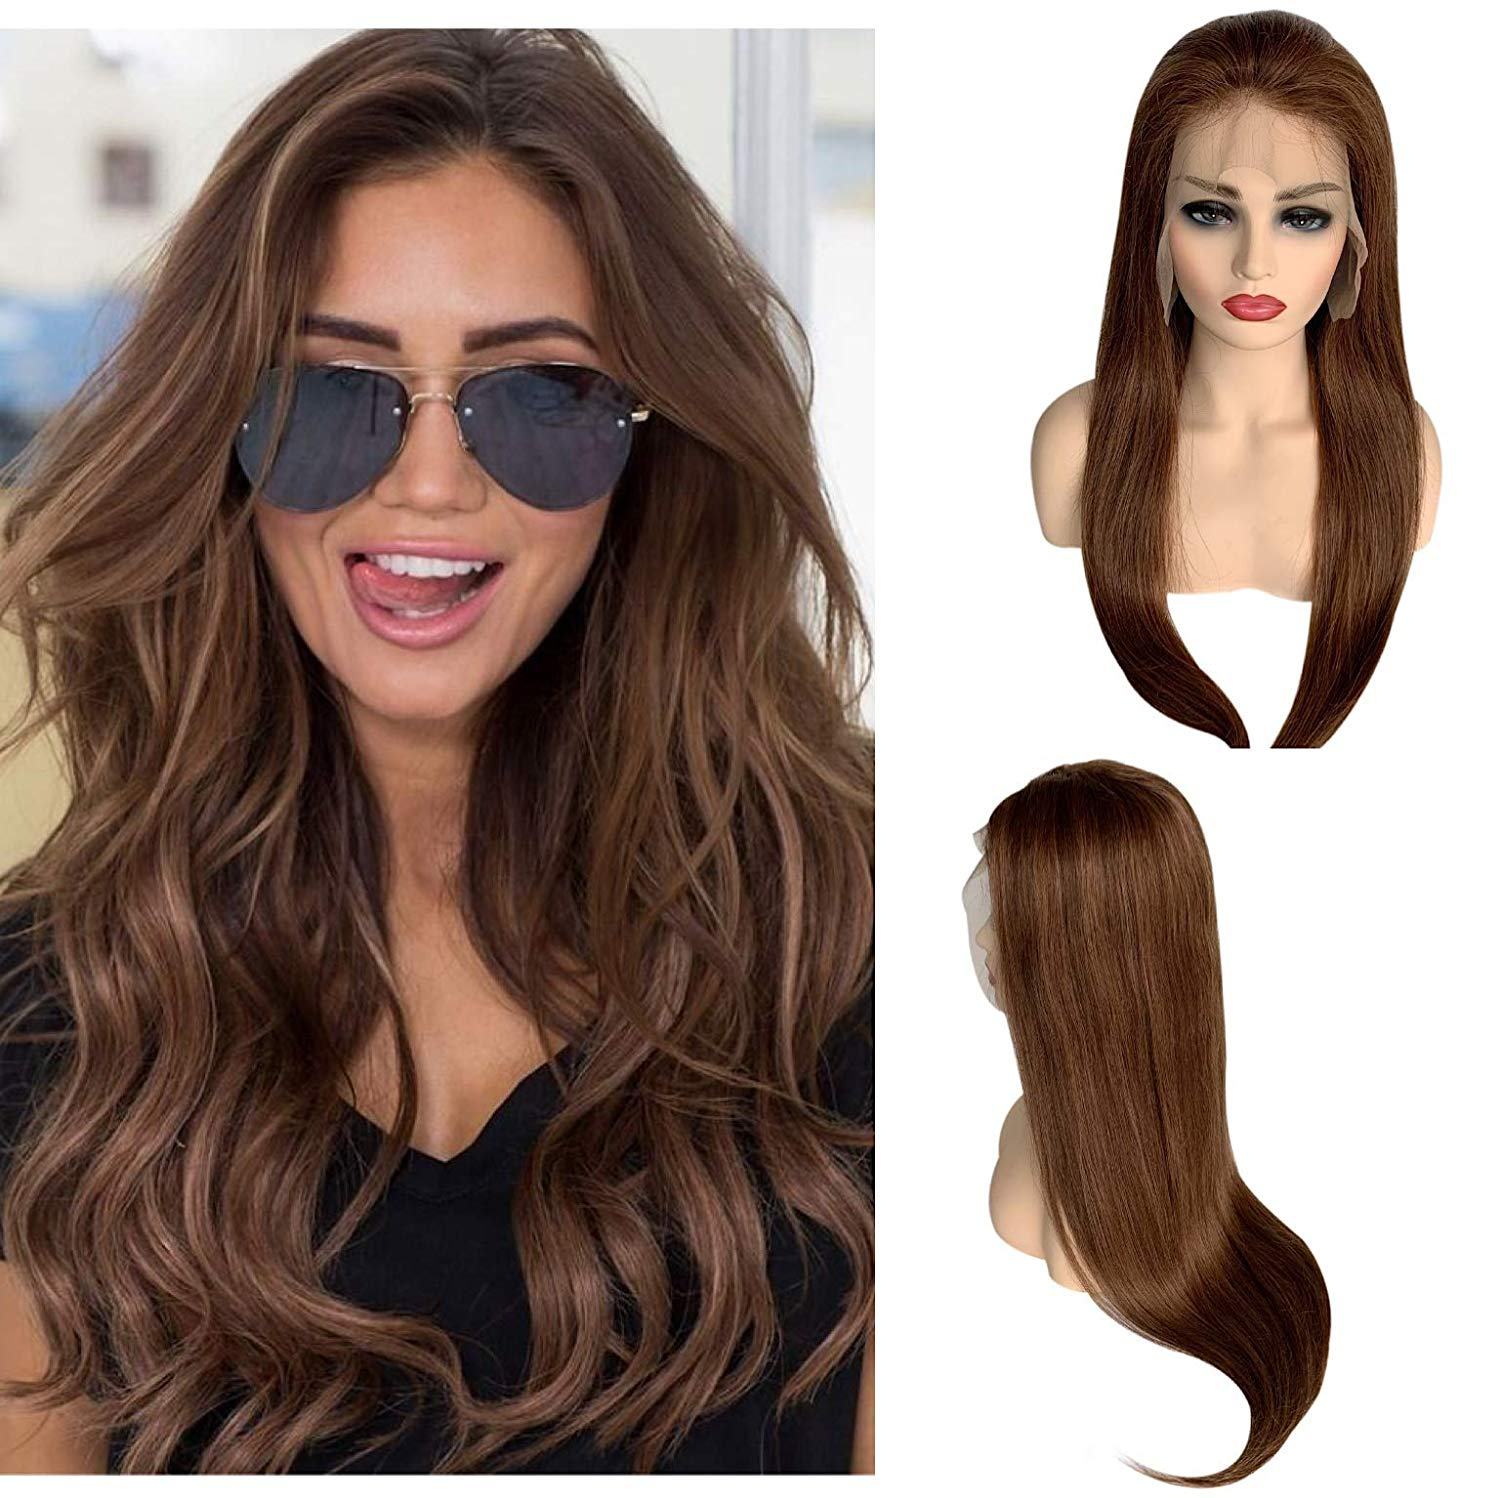 24 Long Straight Human Hair 13x4 Lace Front Balayage Wig Medium Brown Dark Auburn Lace Wigs Pre Plucked Bleached Knots For Women